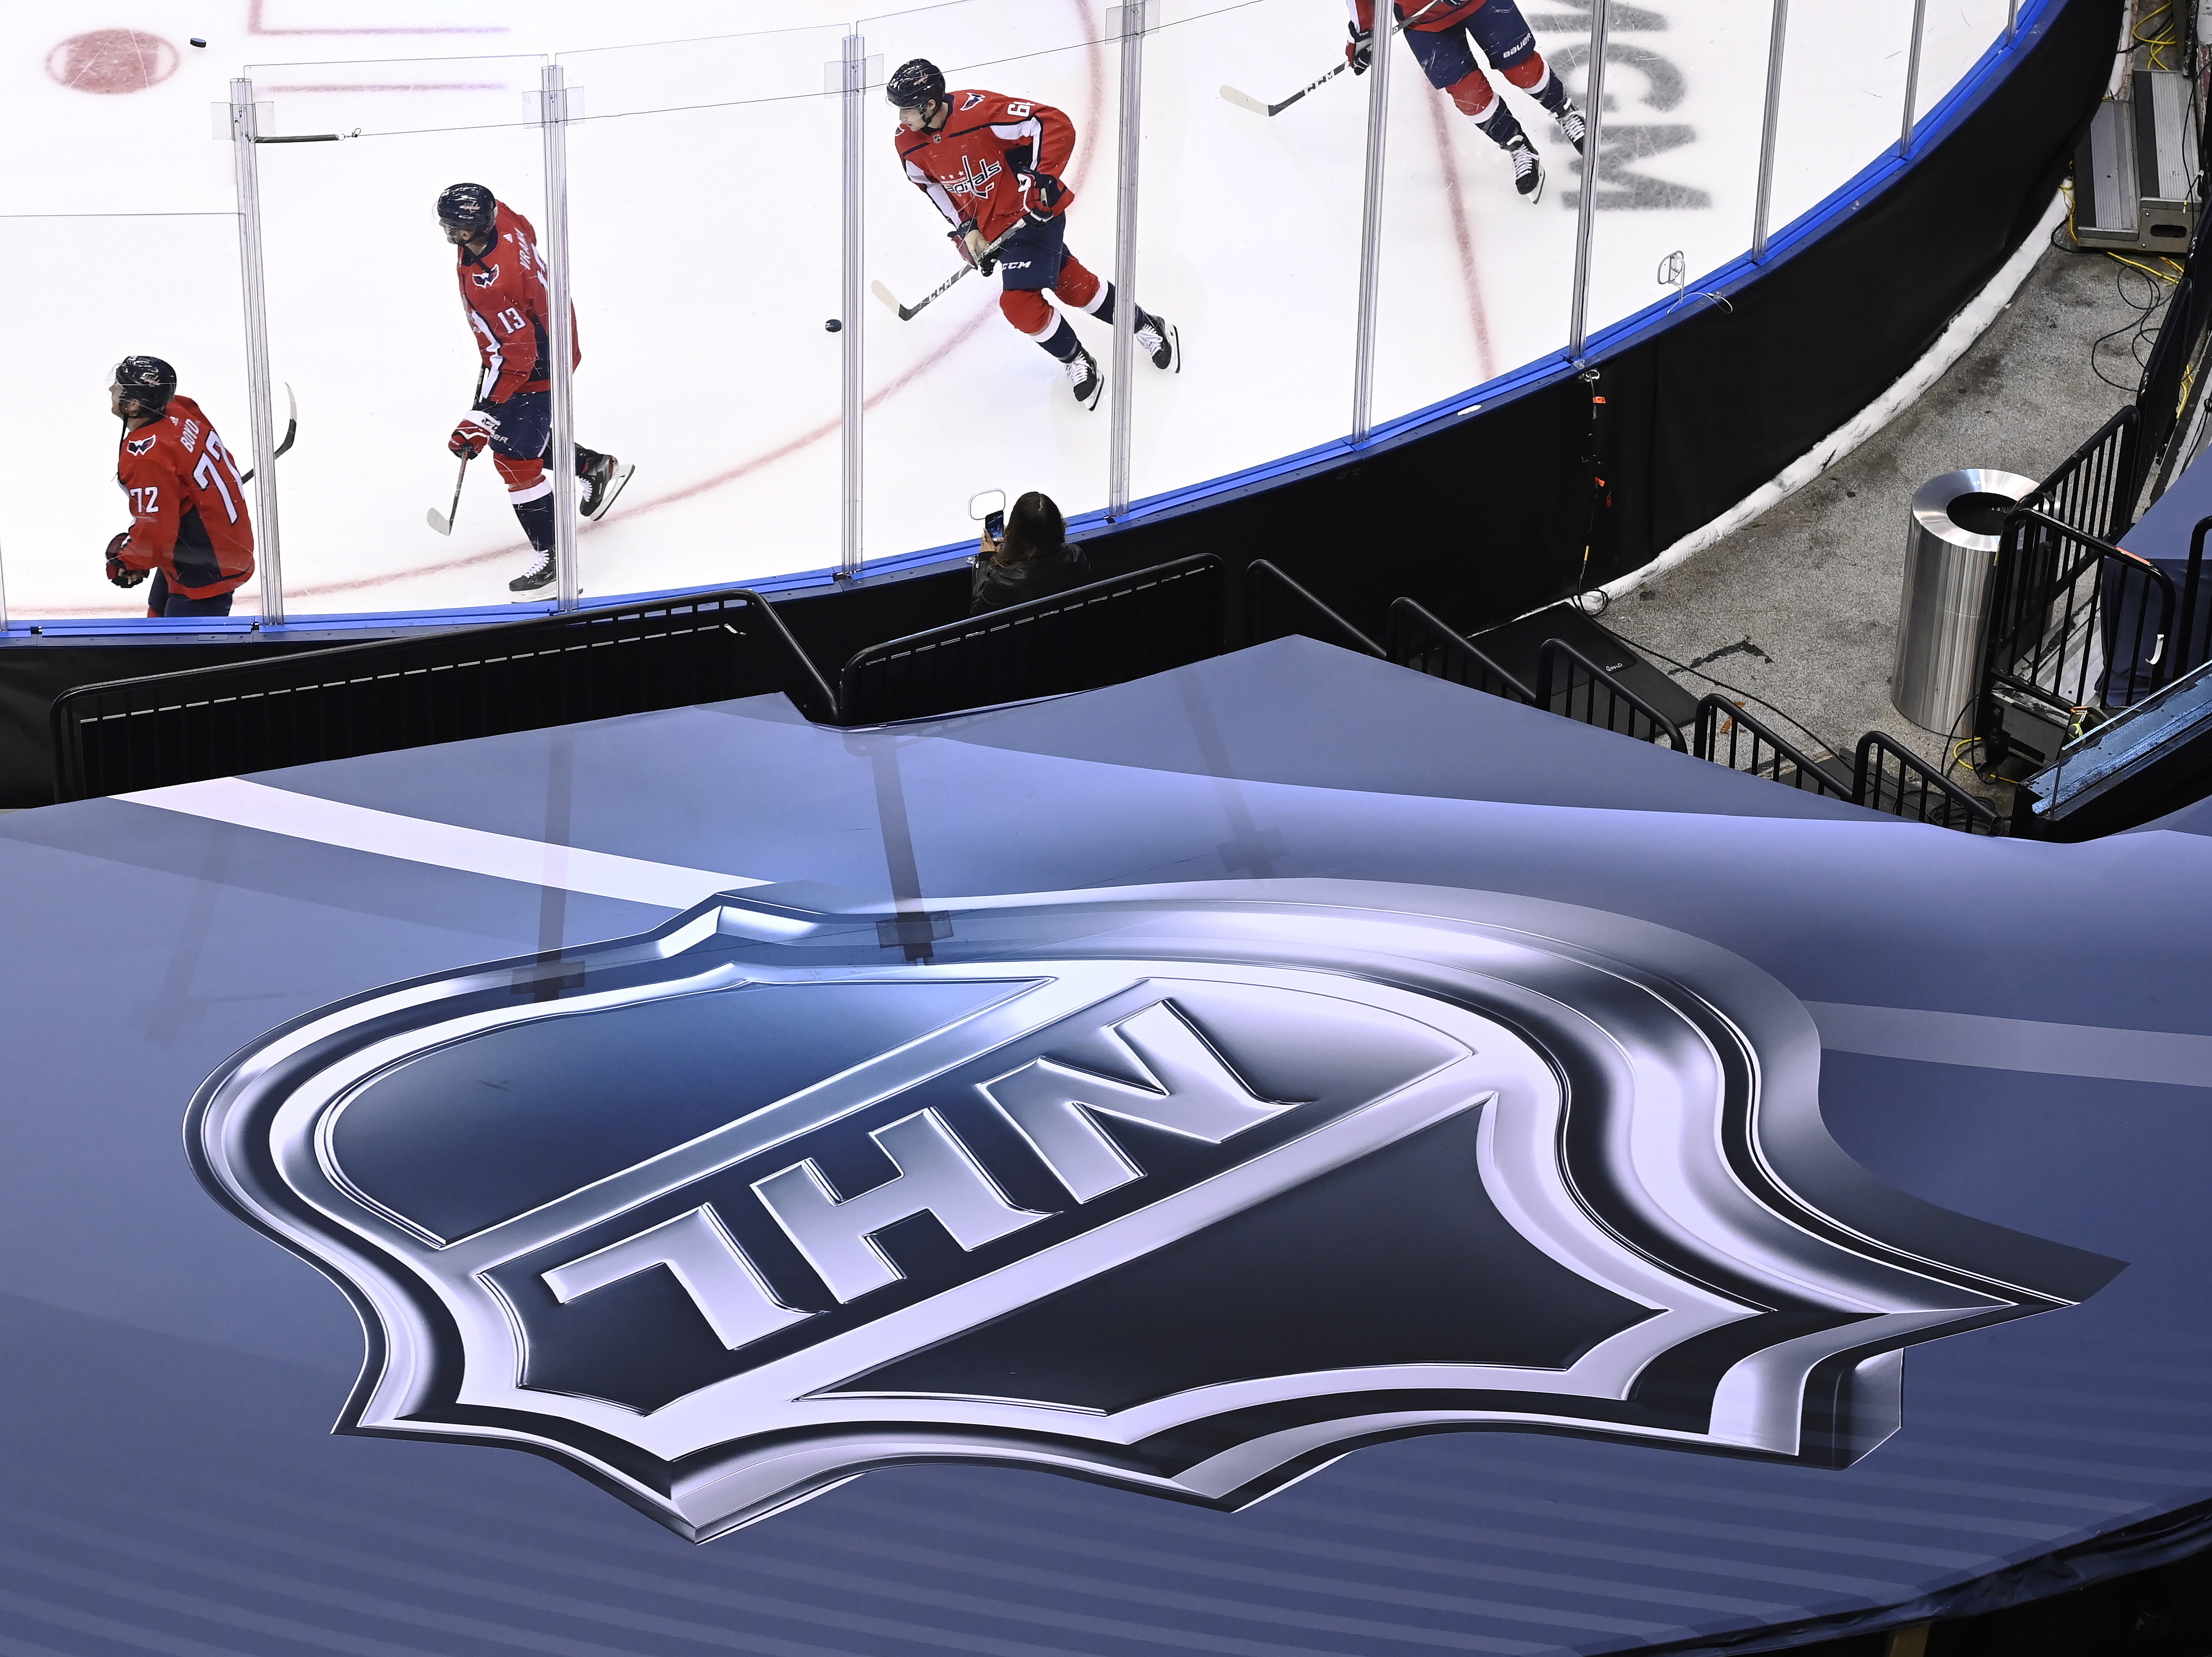 The NHL and NHLPA rolled out strict restrictions for unvaccinated players for next season.